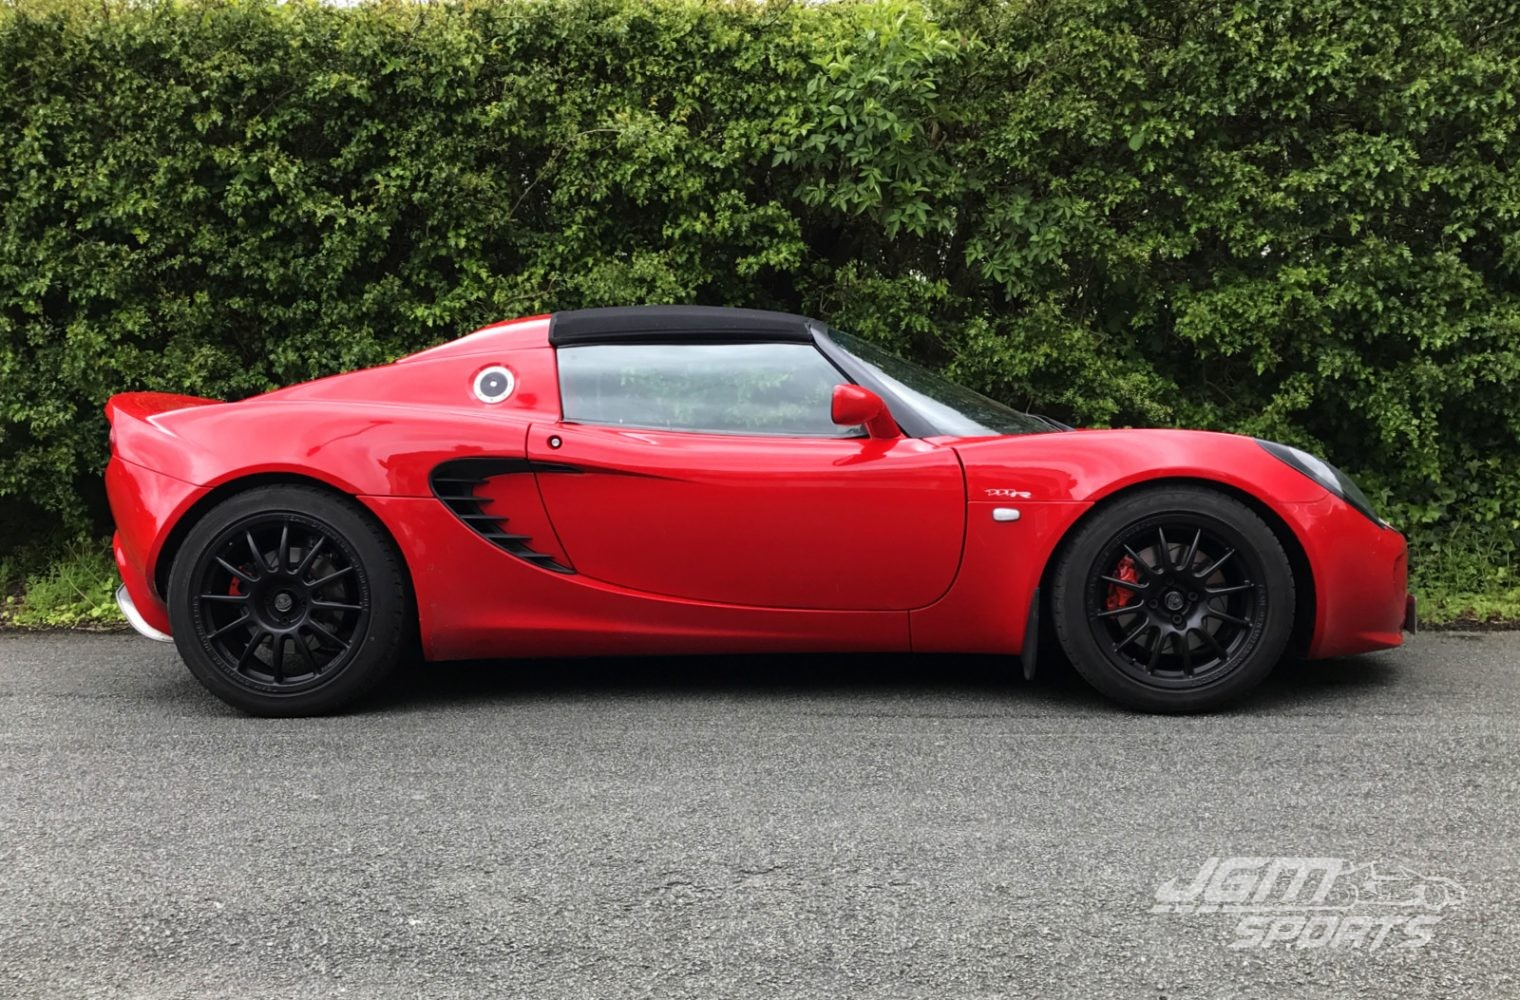 2004 s2 lotus elise 111r full suspension refresh with quantums jgmsports. Black Bedroom Furniture Sets. Home Design Ideas